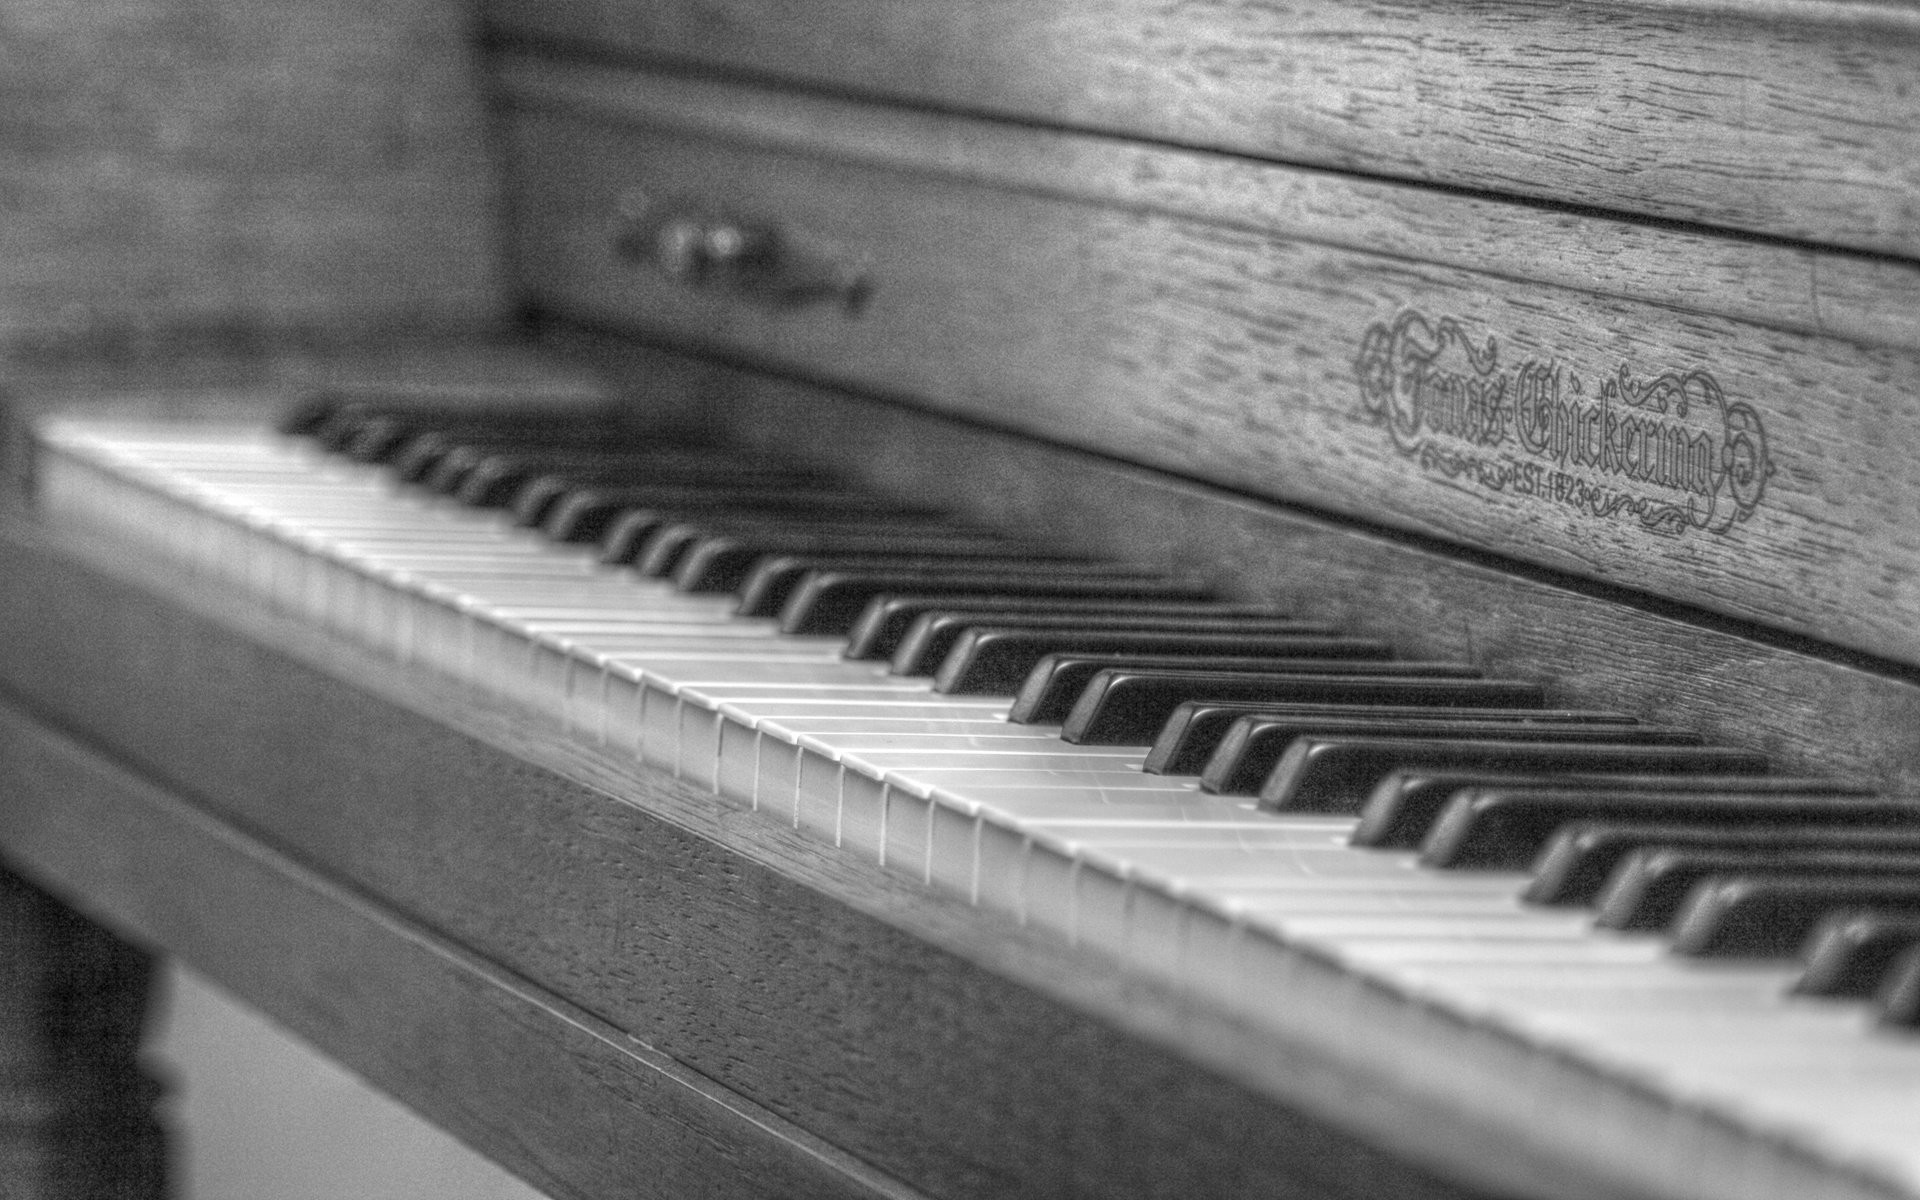 1920x1200 Black white piano wallpaper desktop wallpapers.